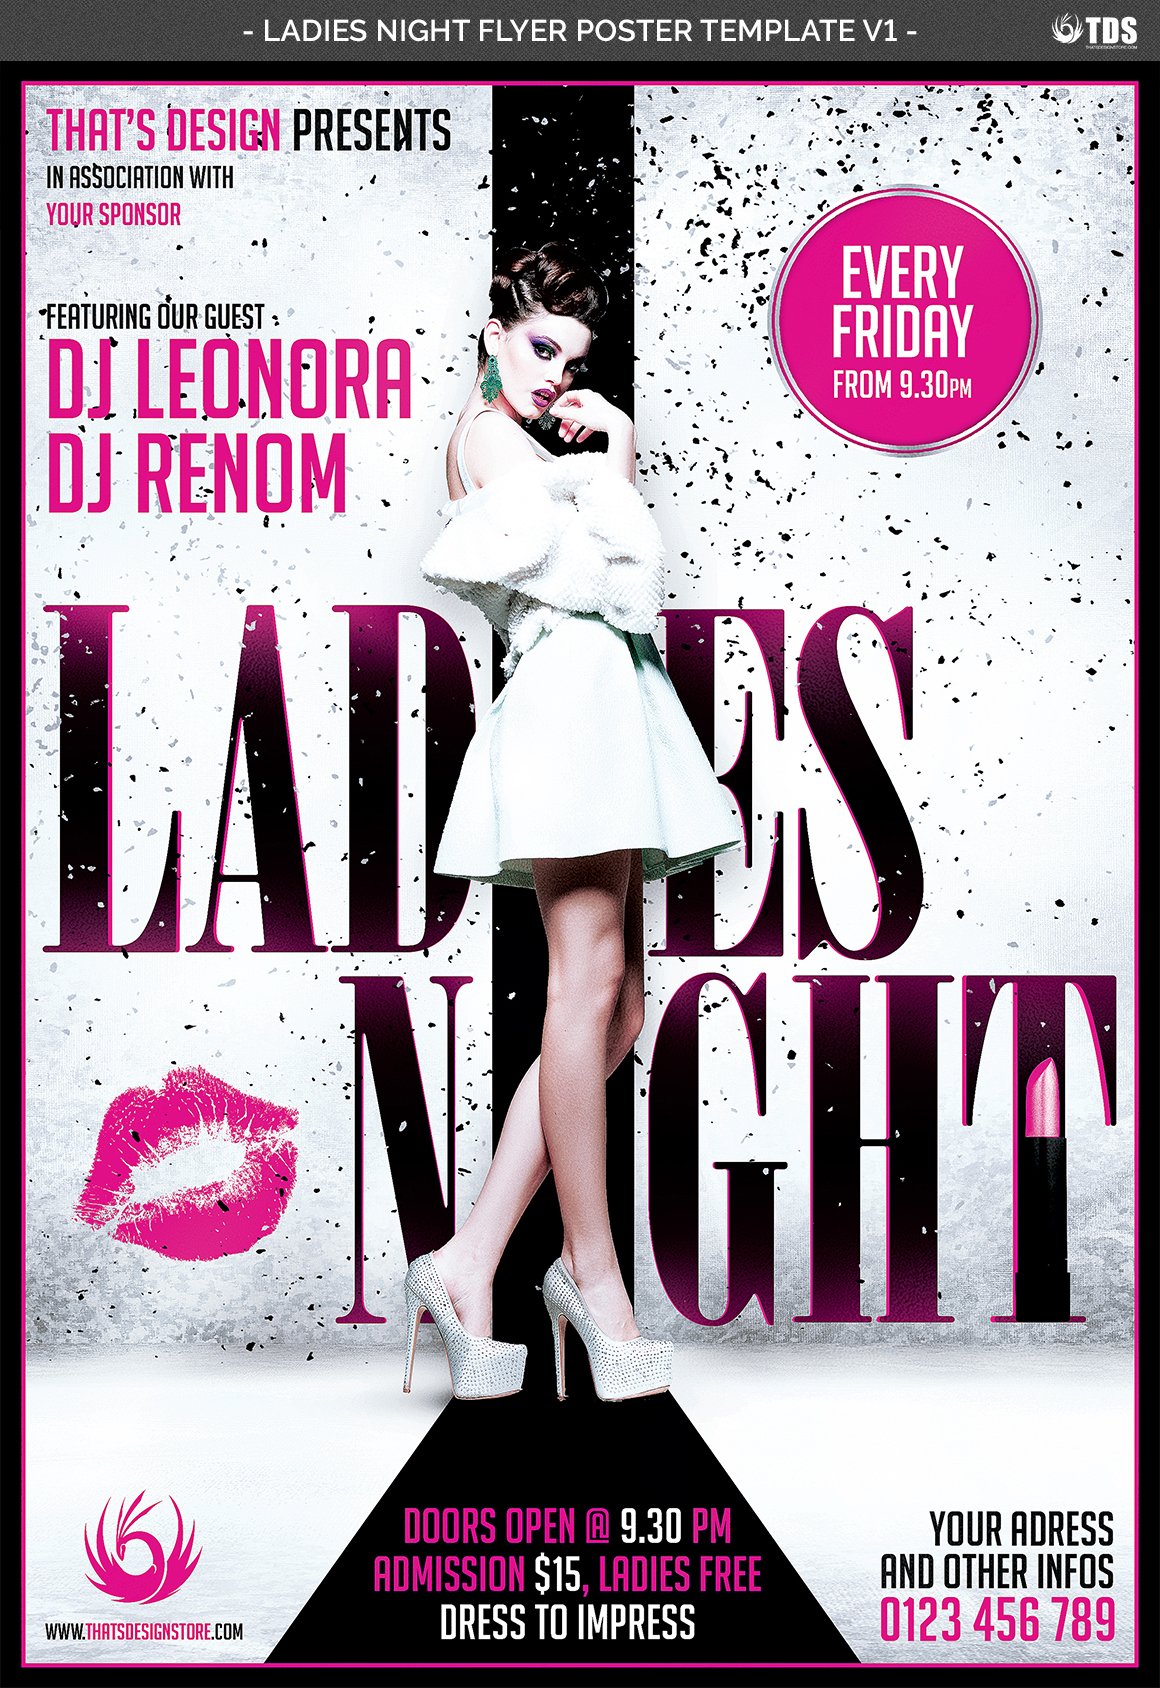 Ladies Night Fyer Poster Template V1 example image 5